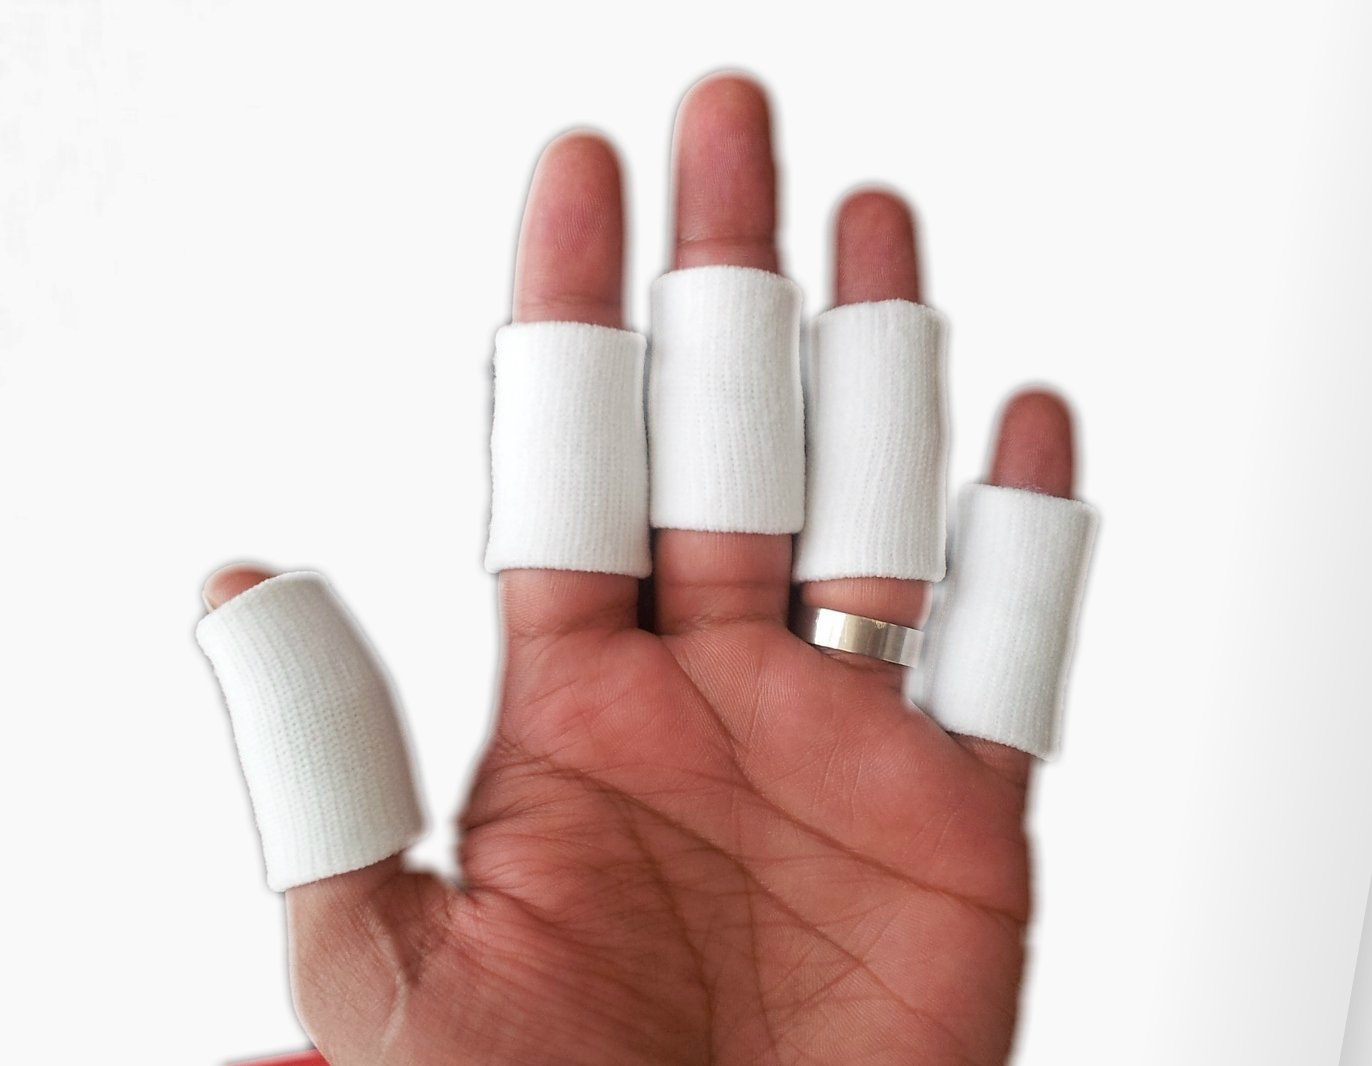 YPHONE Compressed Flexible Finger Sleeves Assistance with Outdoor Sports and Arthritis, 10 Piece